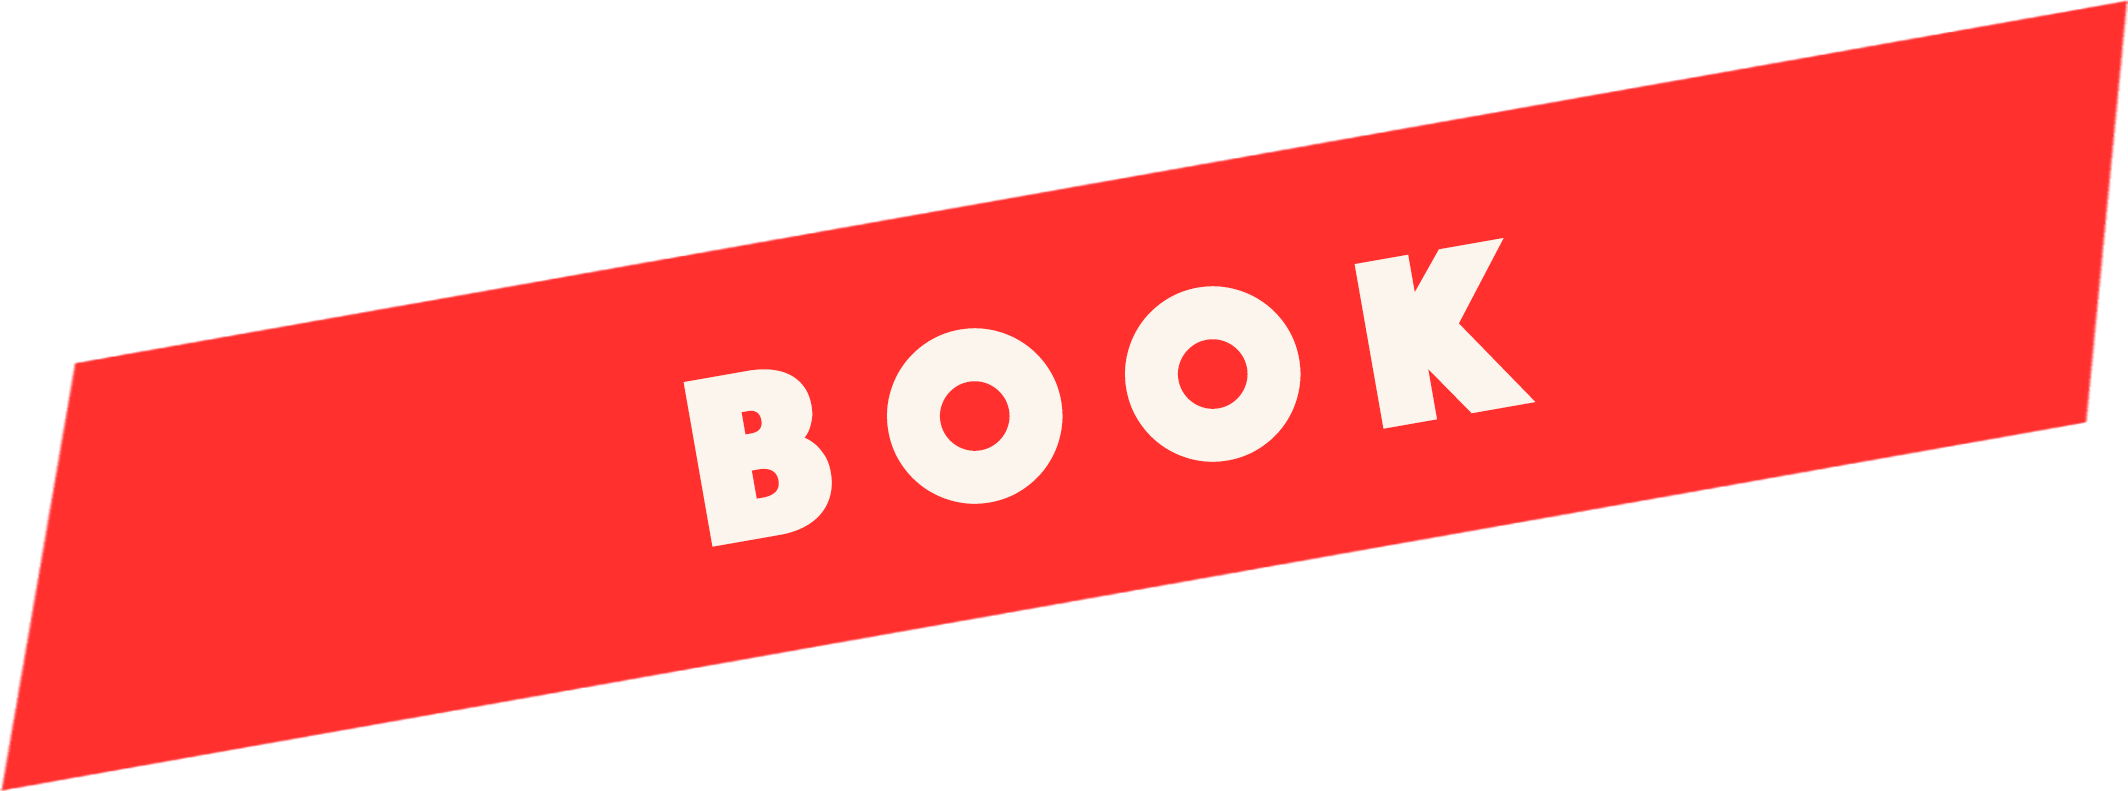 book banner page.png